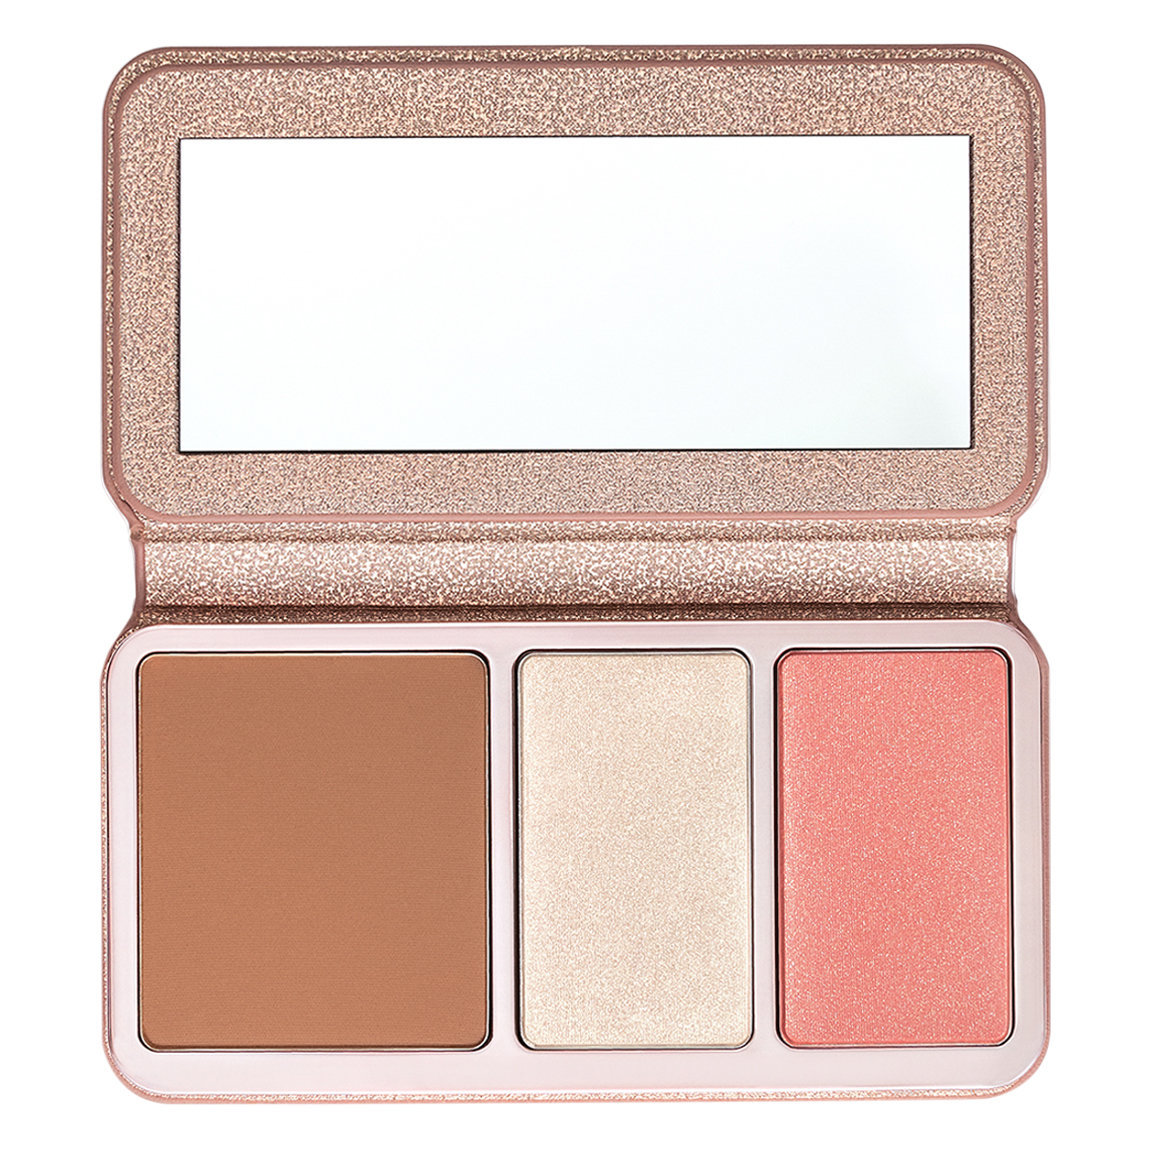 Anastasia Beverly Hills Face Palette Italian Summer alternative view 1 - product swatch.